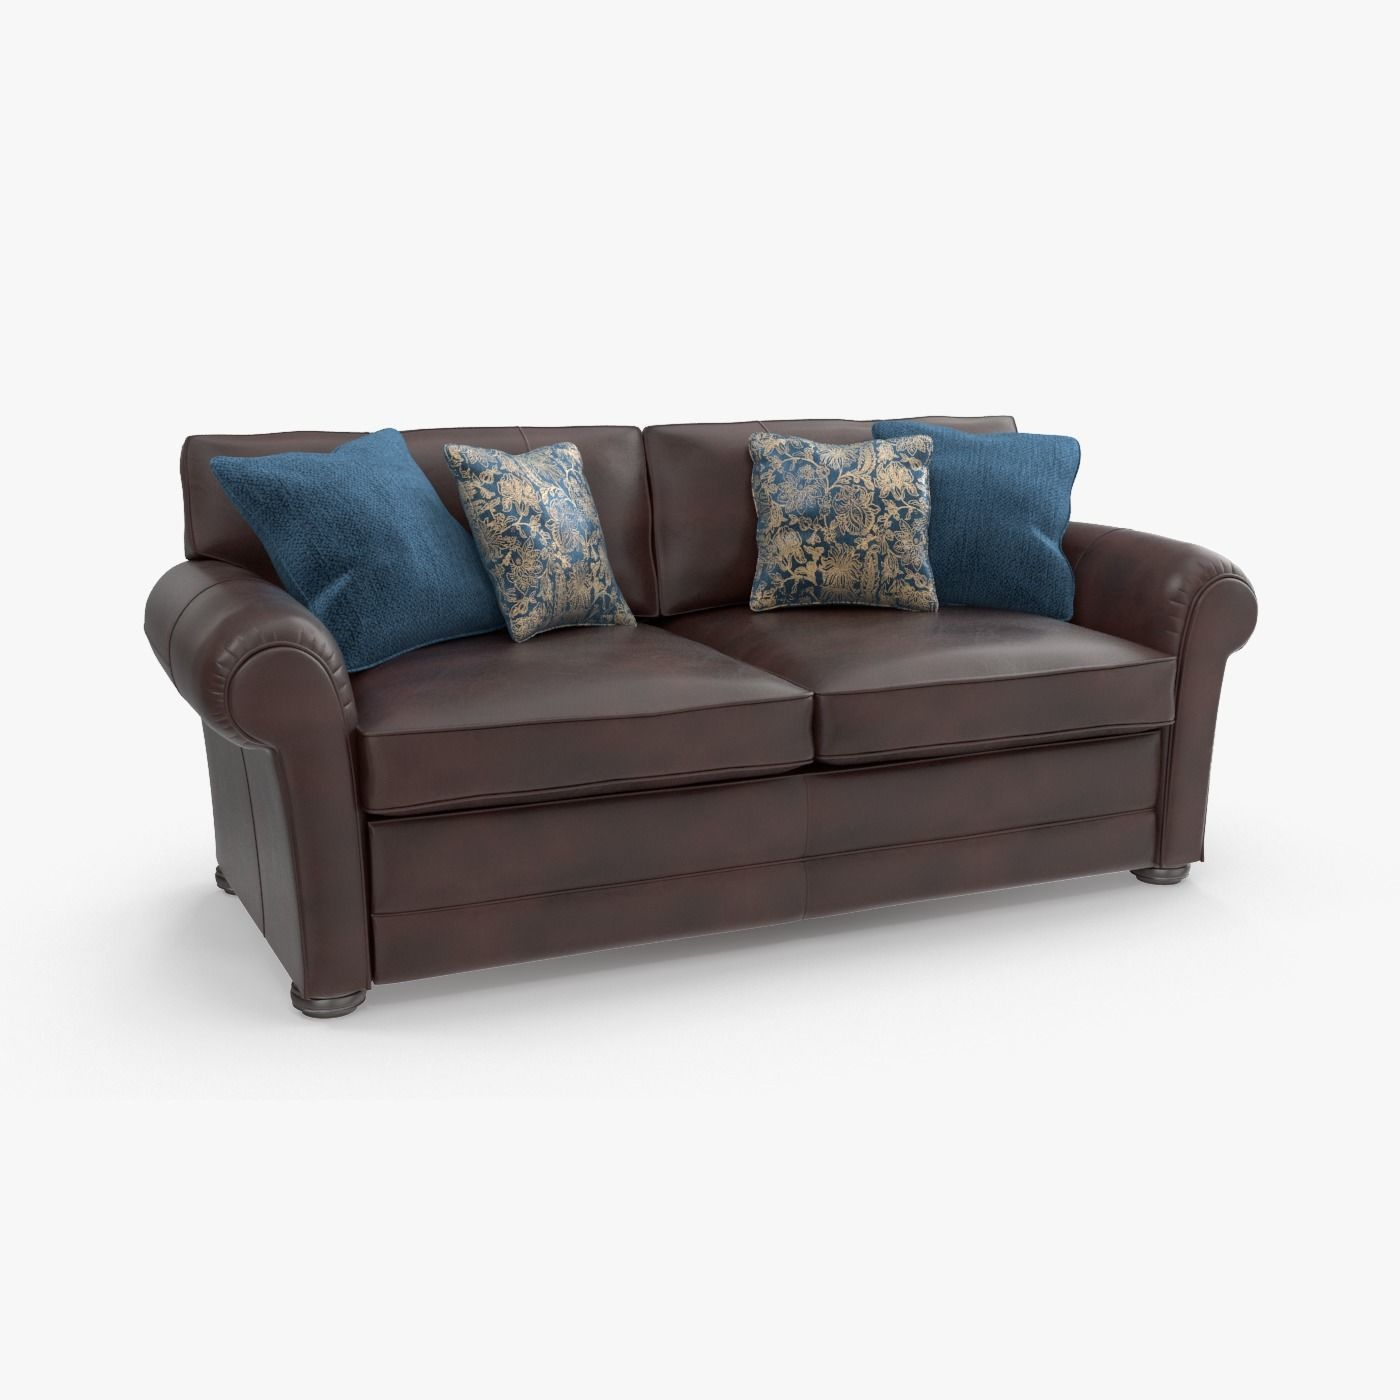 Wade Jefferson Large Scatter Sofa